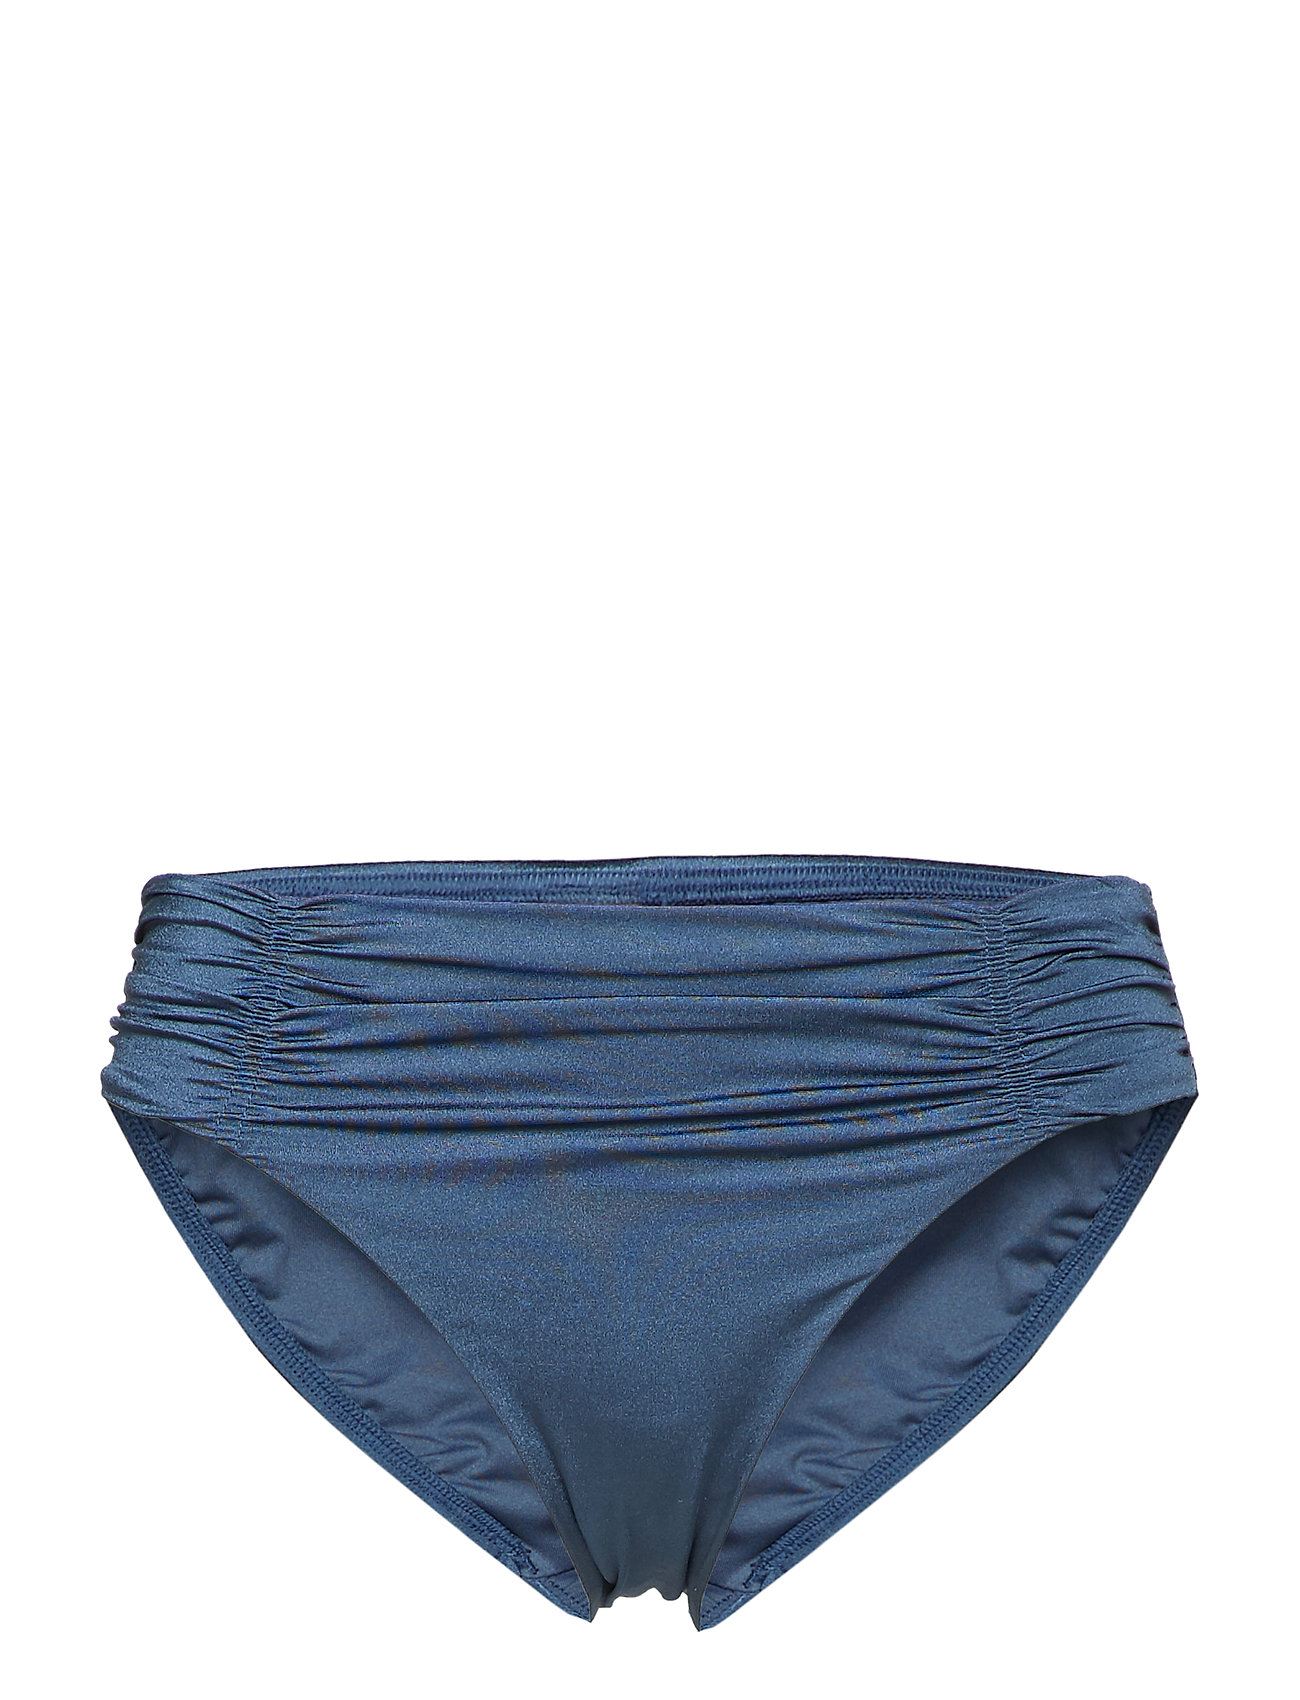 Seafolly Gathered Front Retro Pant - BLUEPRINT